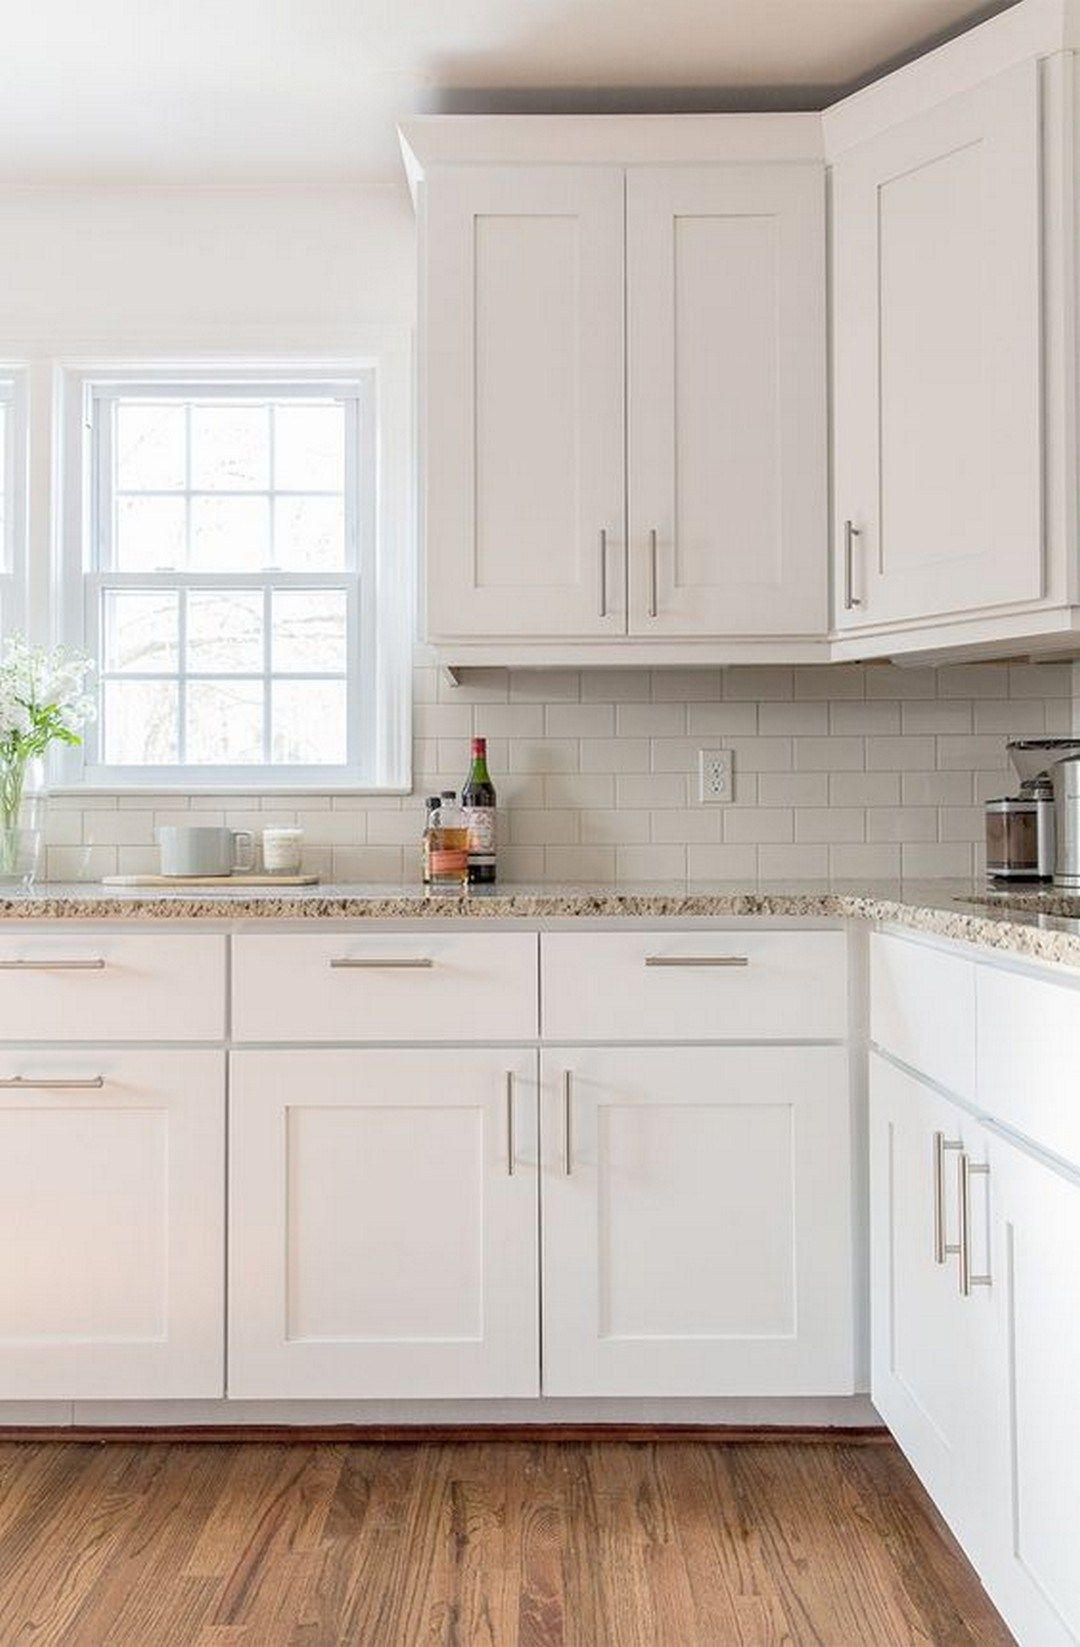 Amazing Designs of White Kitchen Cabinet to Improve in your Tiny ...